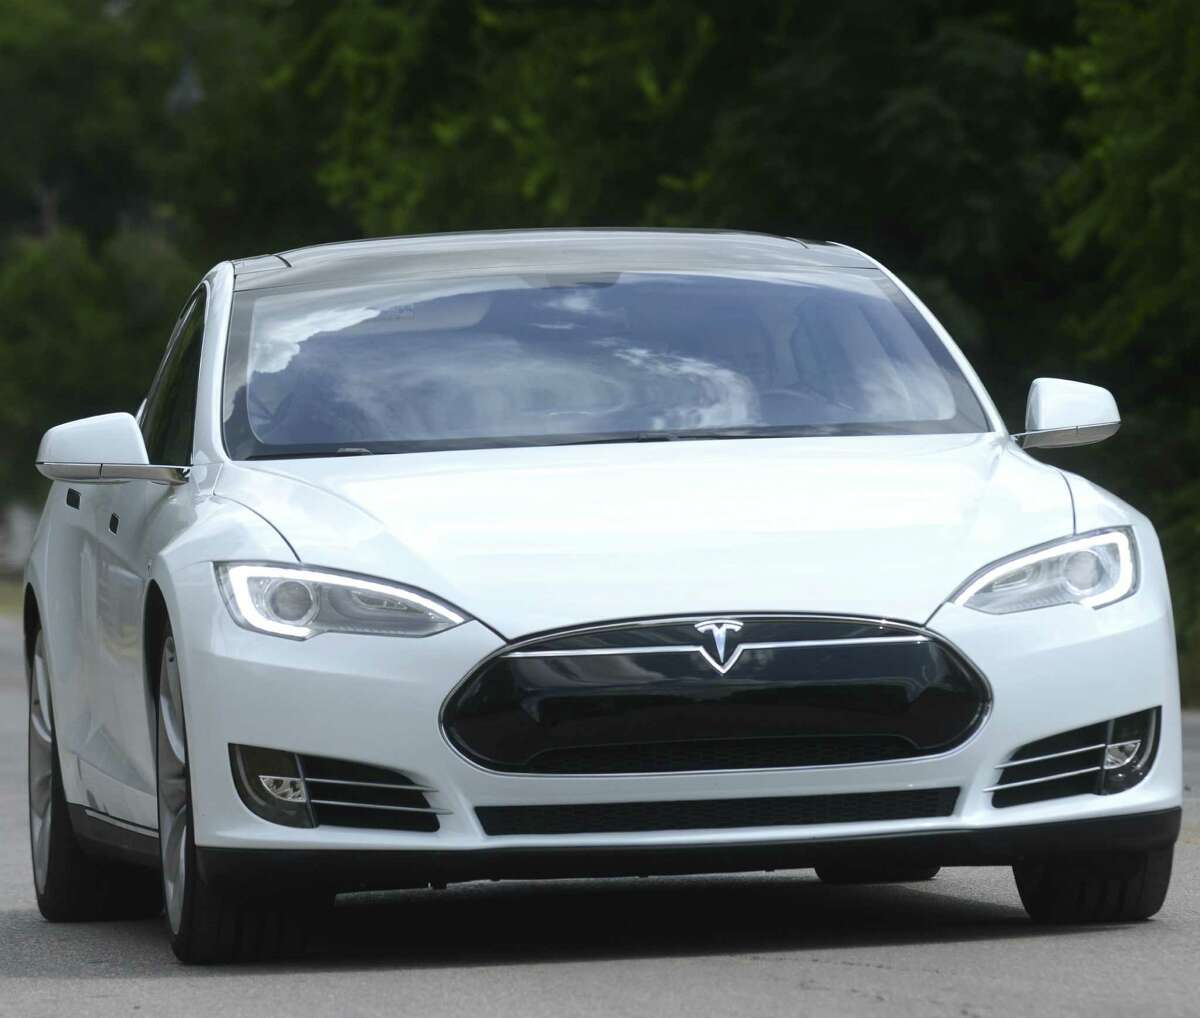 An all-electric Tesla Model S sedan makes its way along Mission Road in San Antonio on Wednesday, Aug. 21, 2013. Express-News business reporter Neal Morton test drove the vehicle.